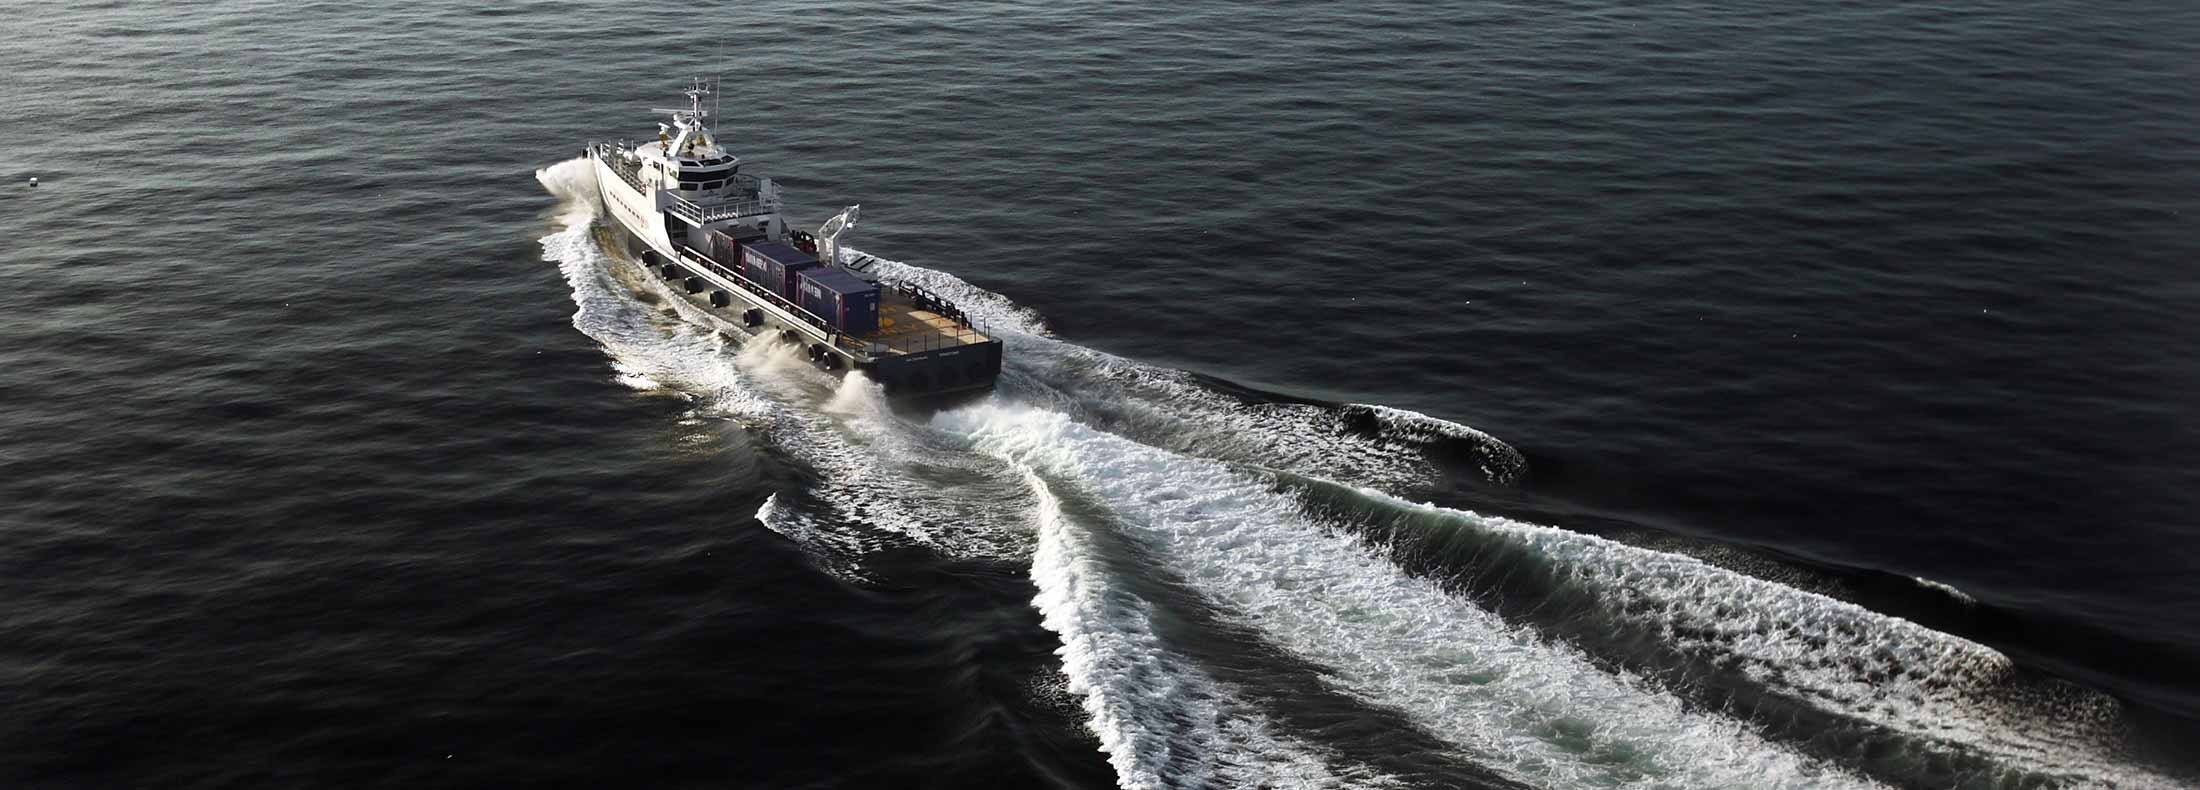 SVS Feet - Specialised Vessel Services - Africa